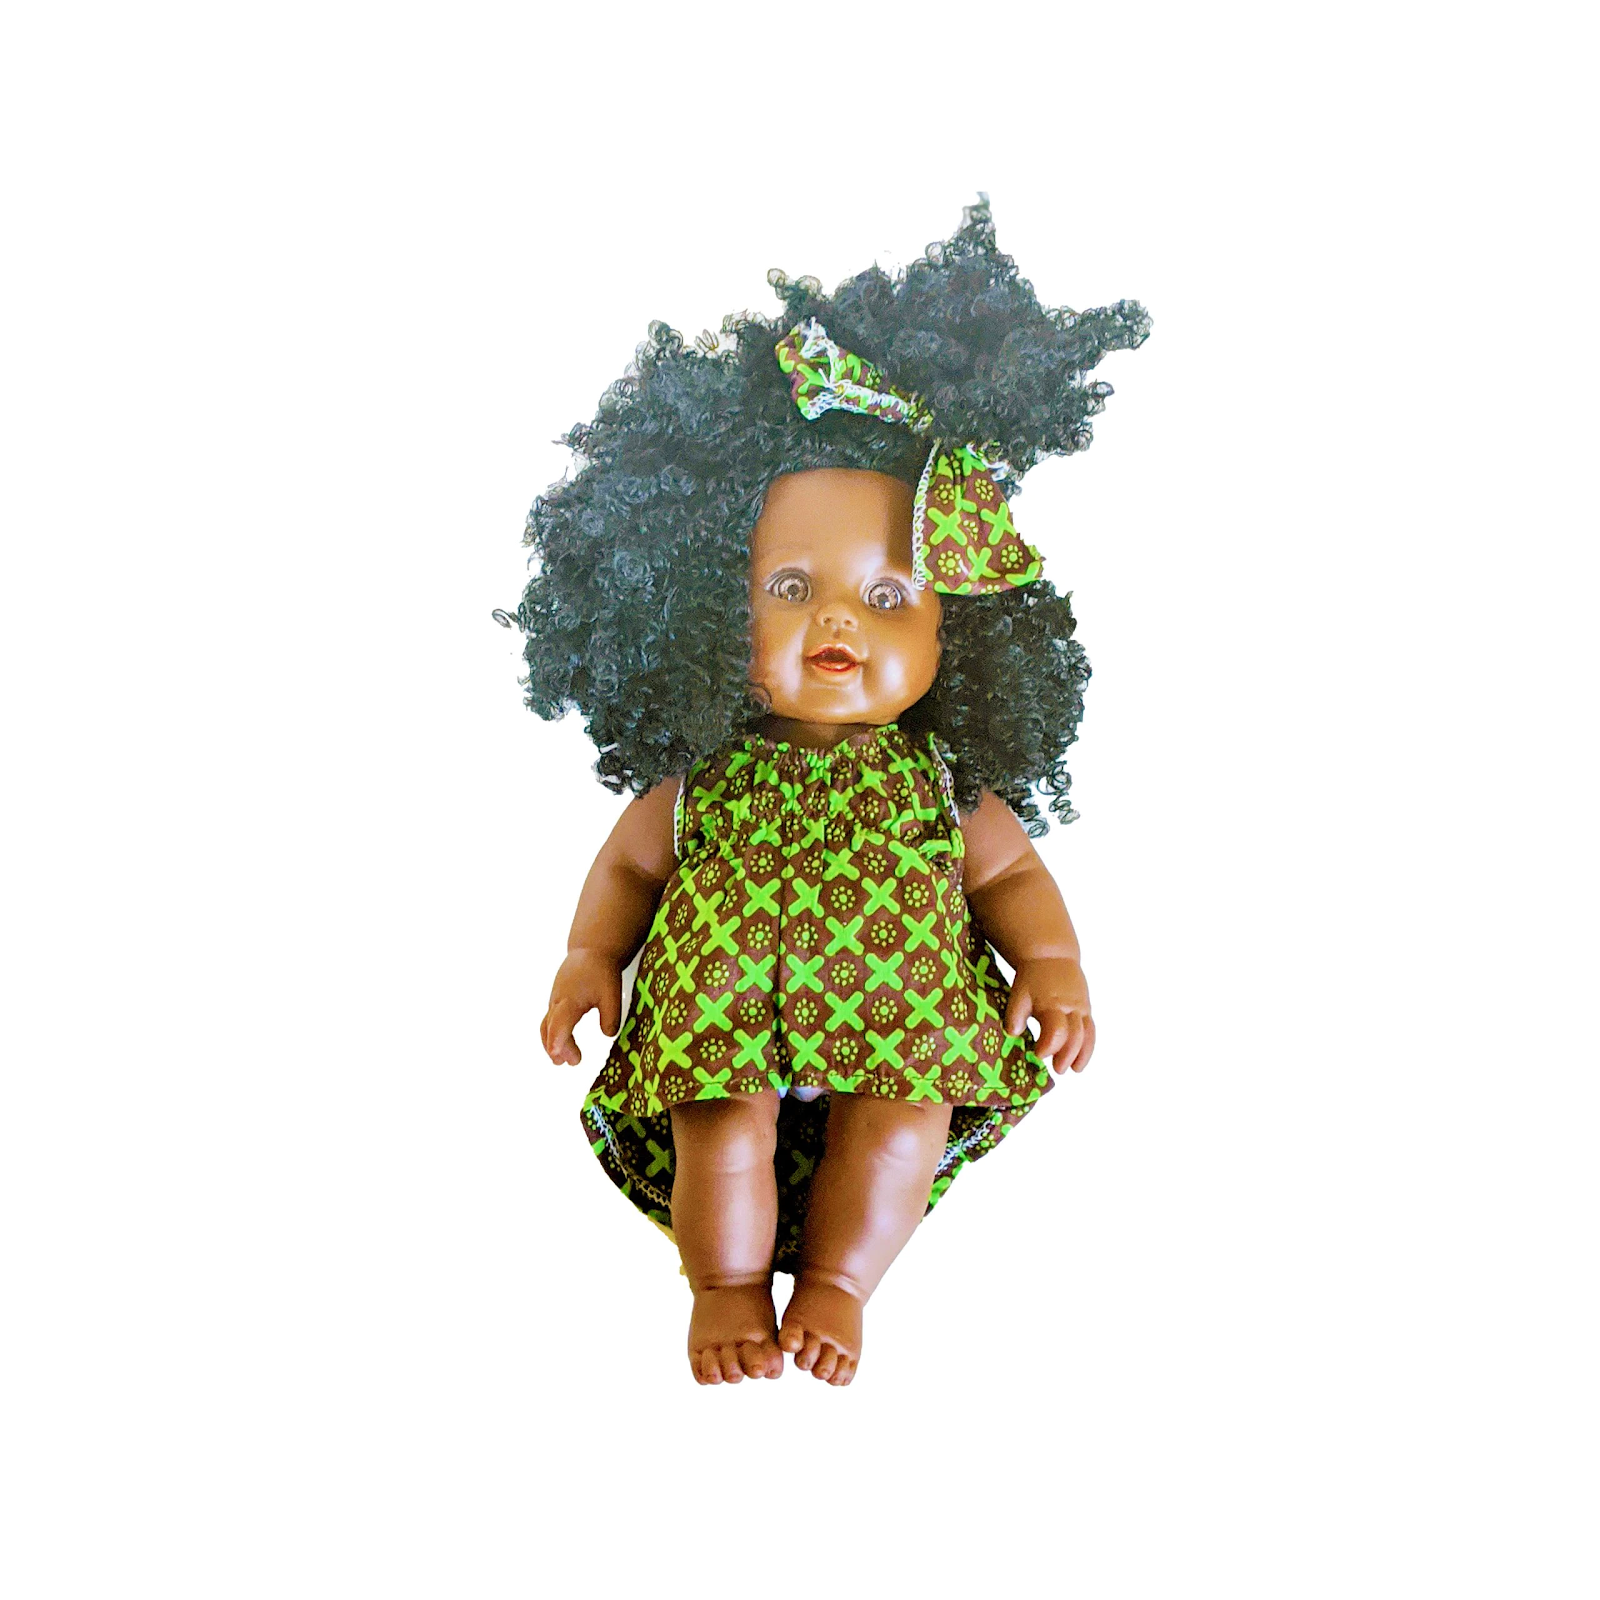 African baby doll wearing green dress